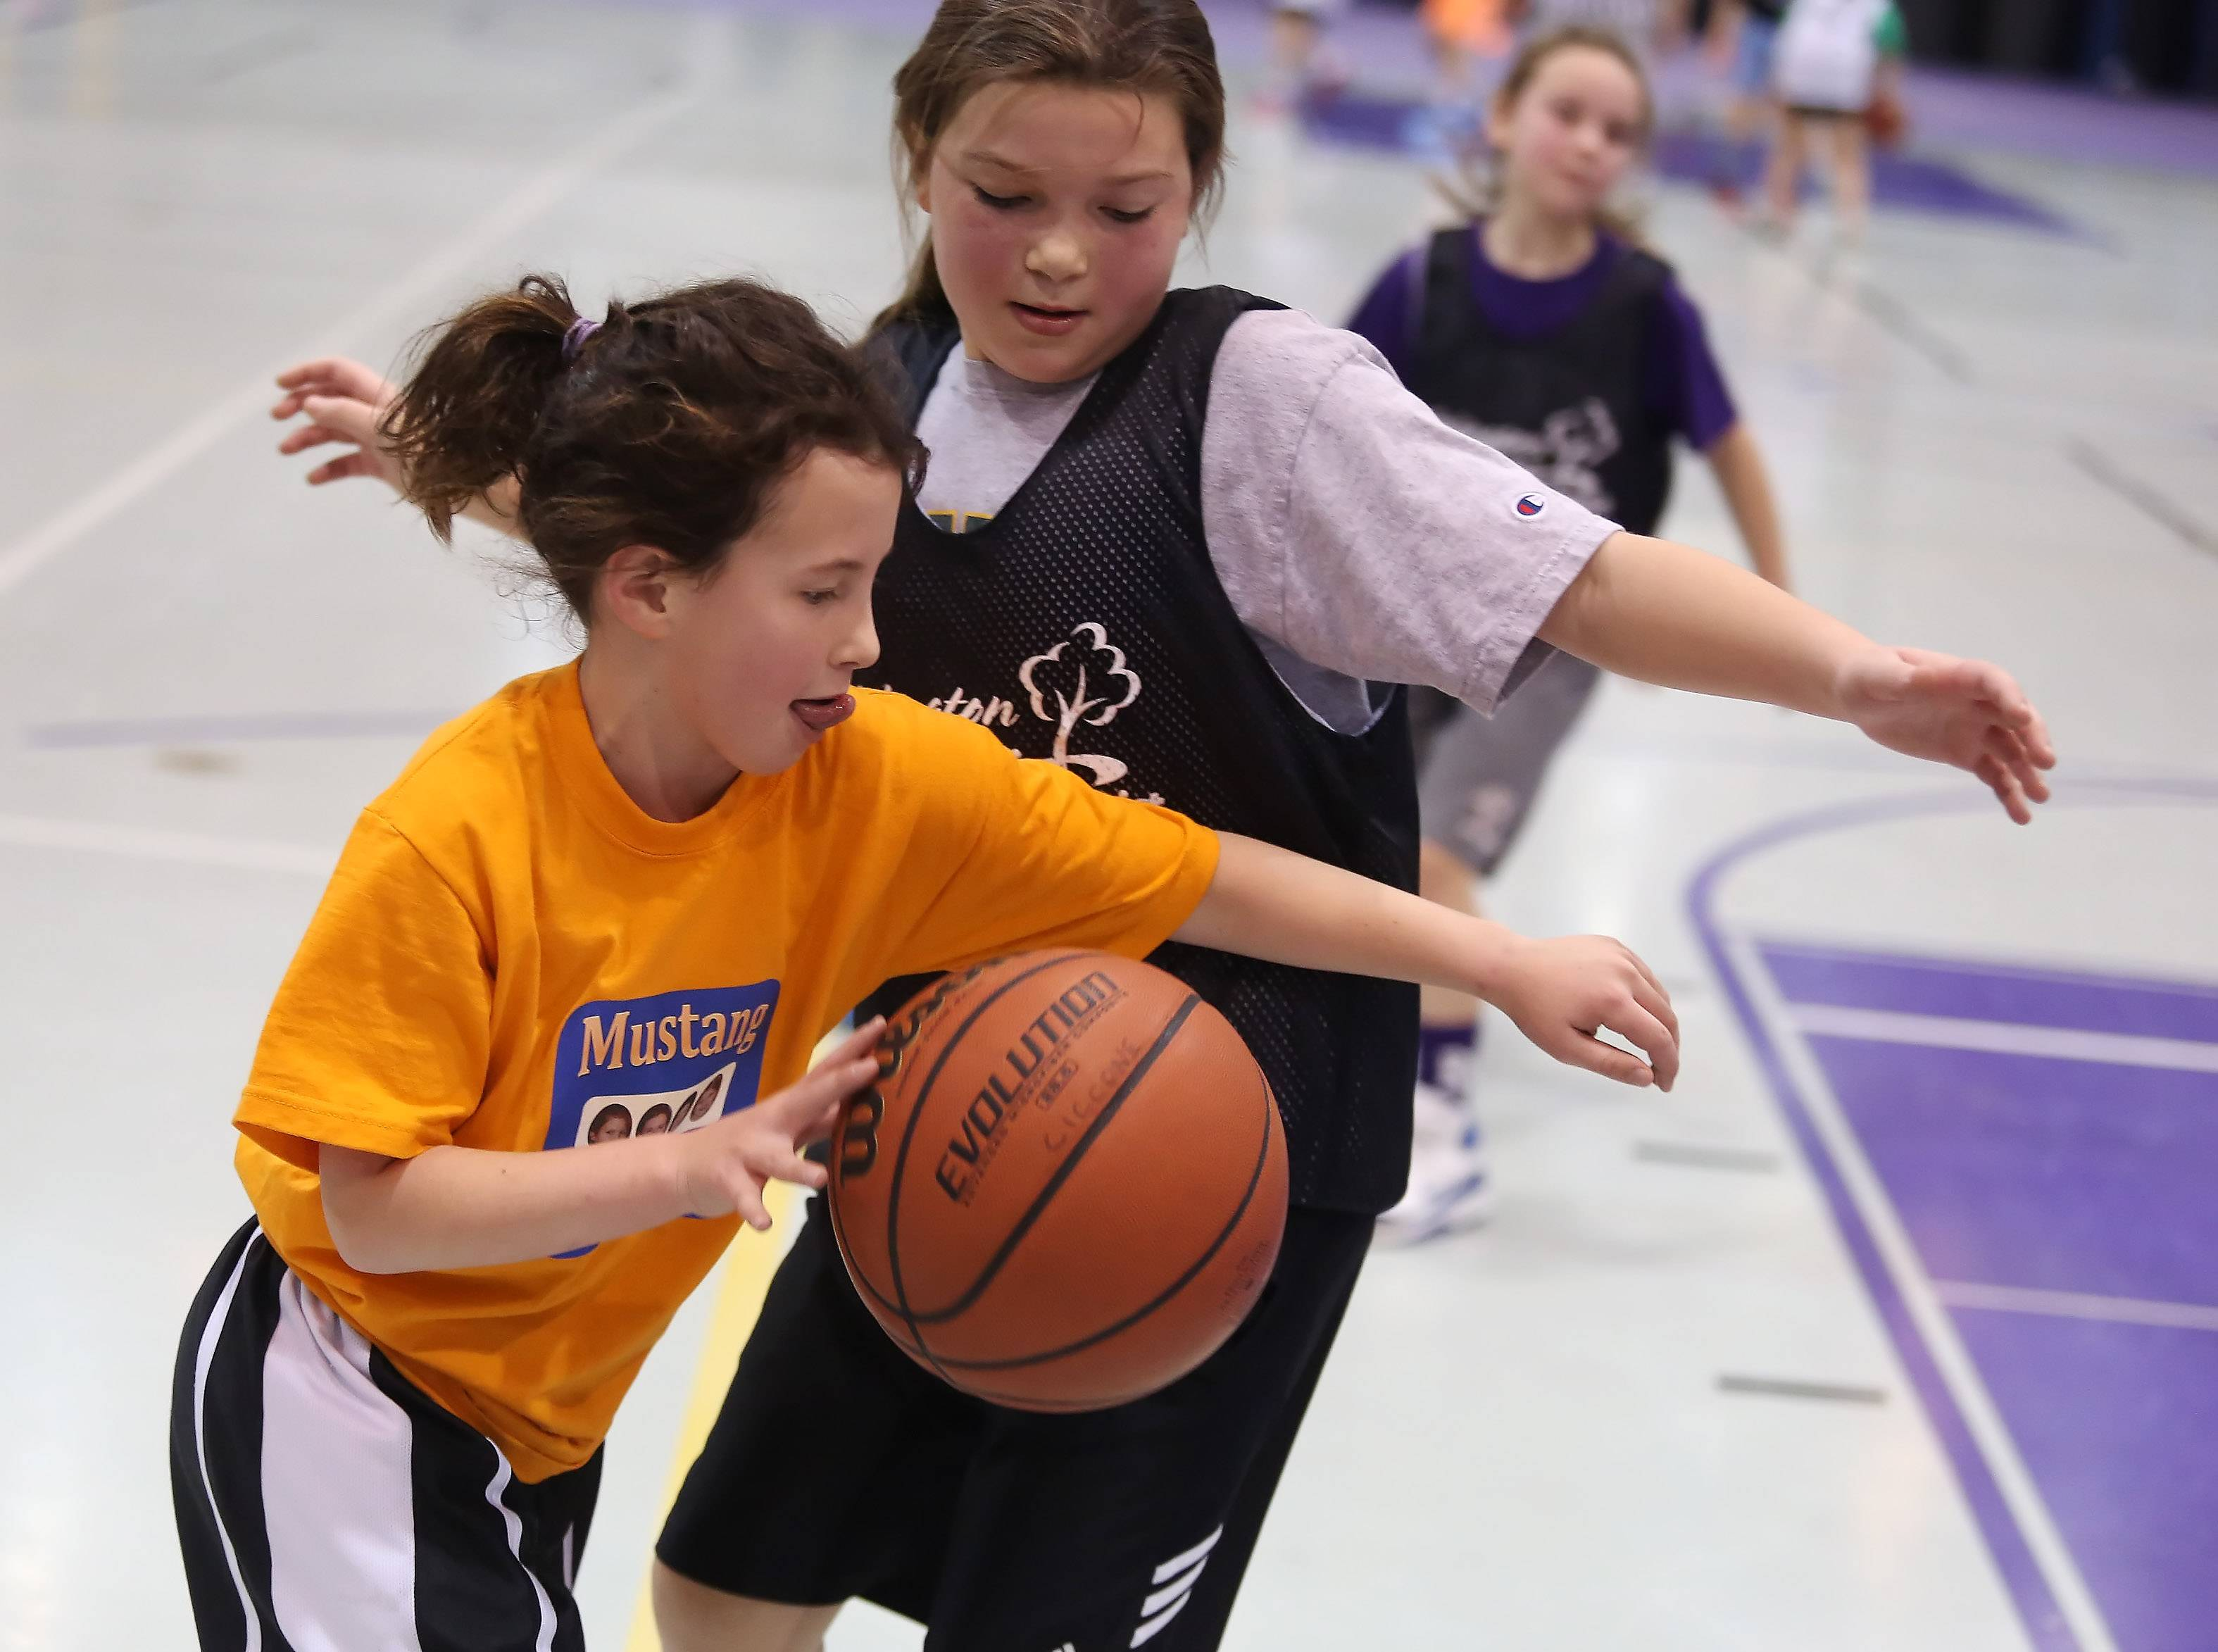 Third-grader Julia Ingemunson, left, of the Mustang MAJK tries to dribble around fourth-grader Caroline Ciccone of the Spartans during Sunday's Mustang 3-on-3 Shootout at Rolling Meadows High School.